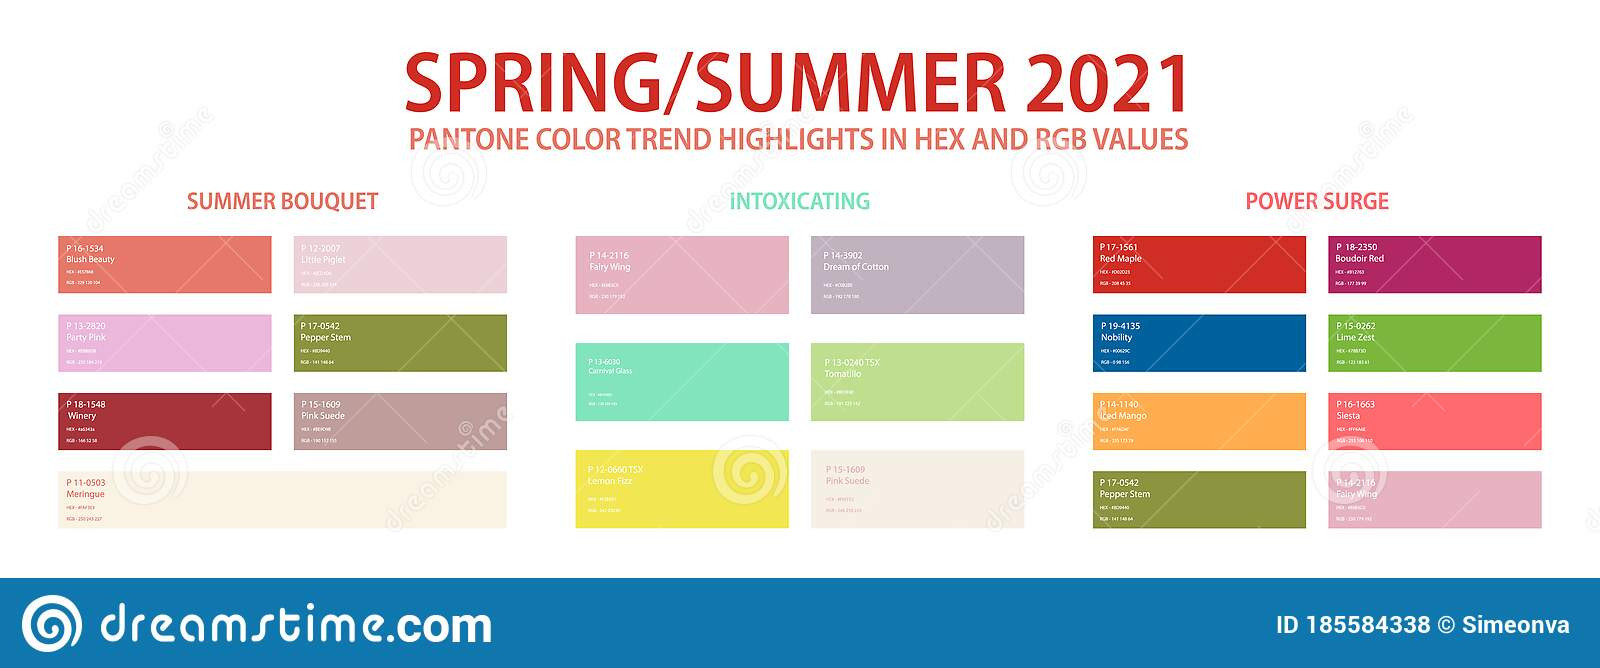 Pantone Color Palette For Spring Summer 2021 In Hex And Rgb Values Stock Vector Illustration Of Isolated Blue 185584338